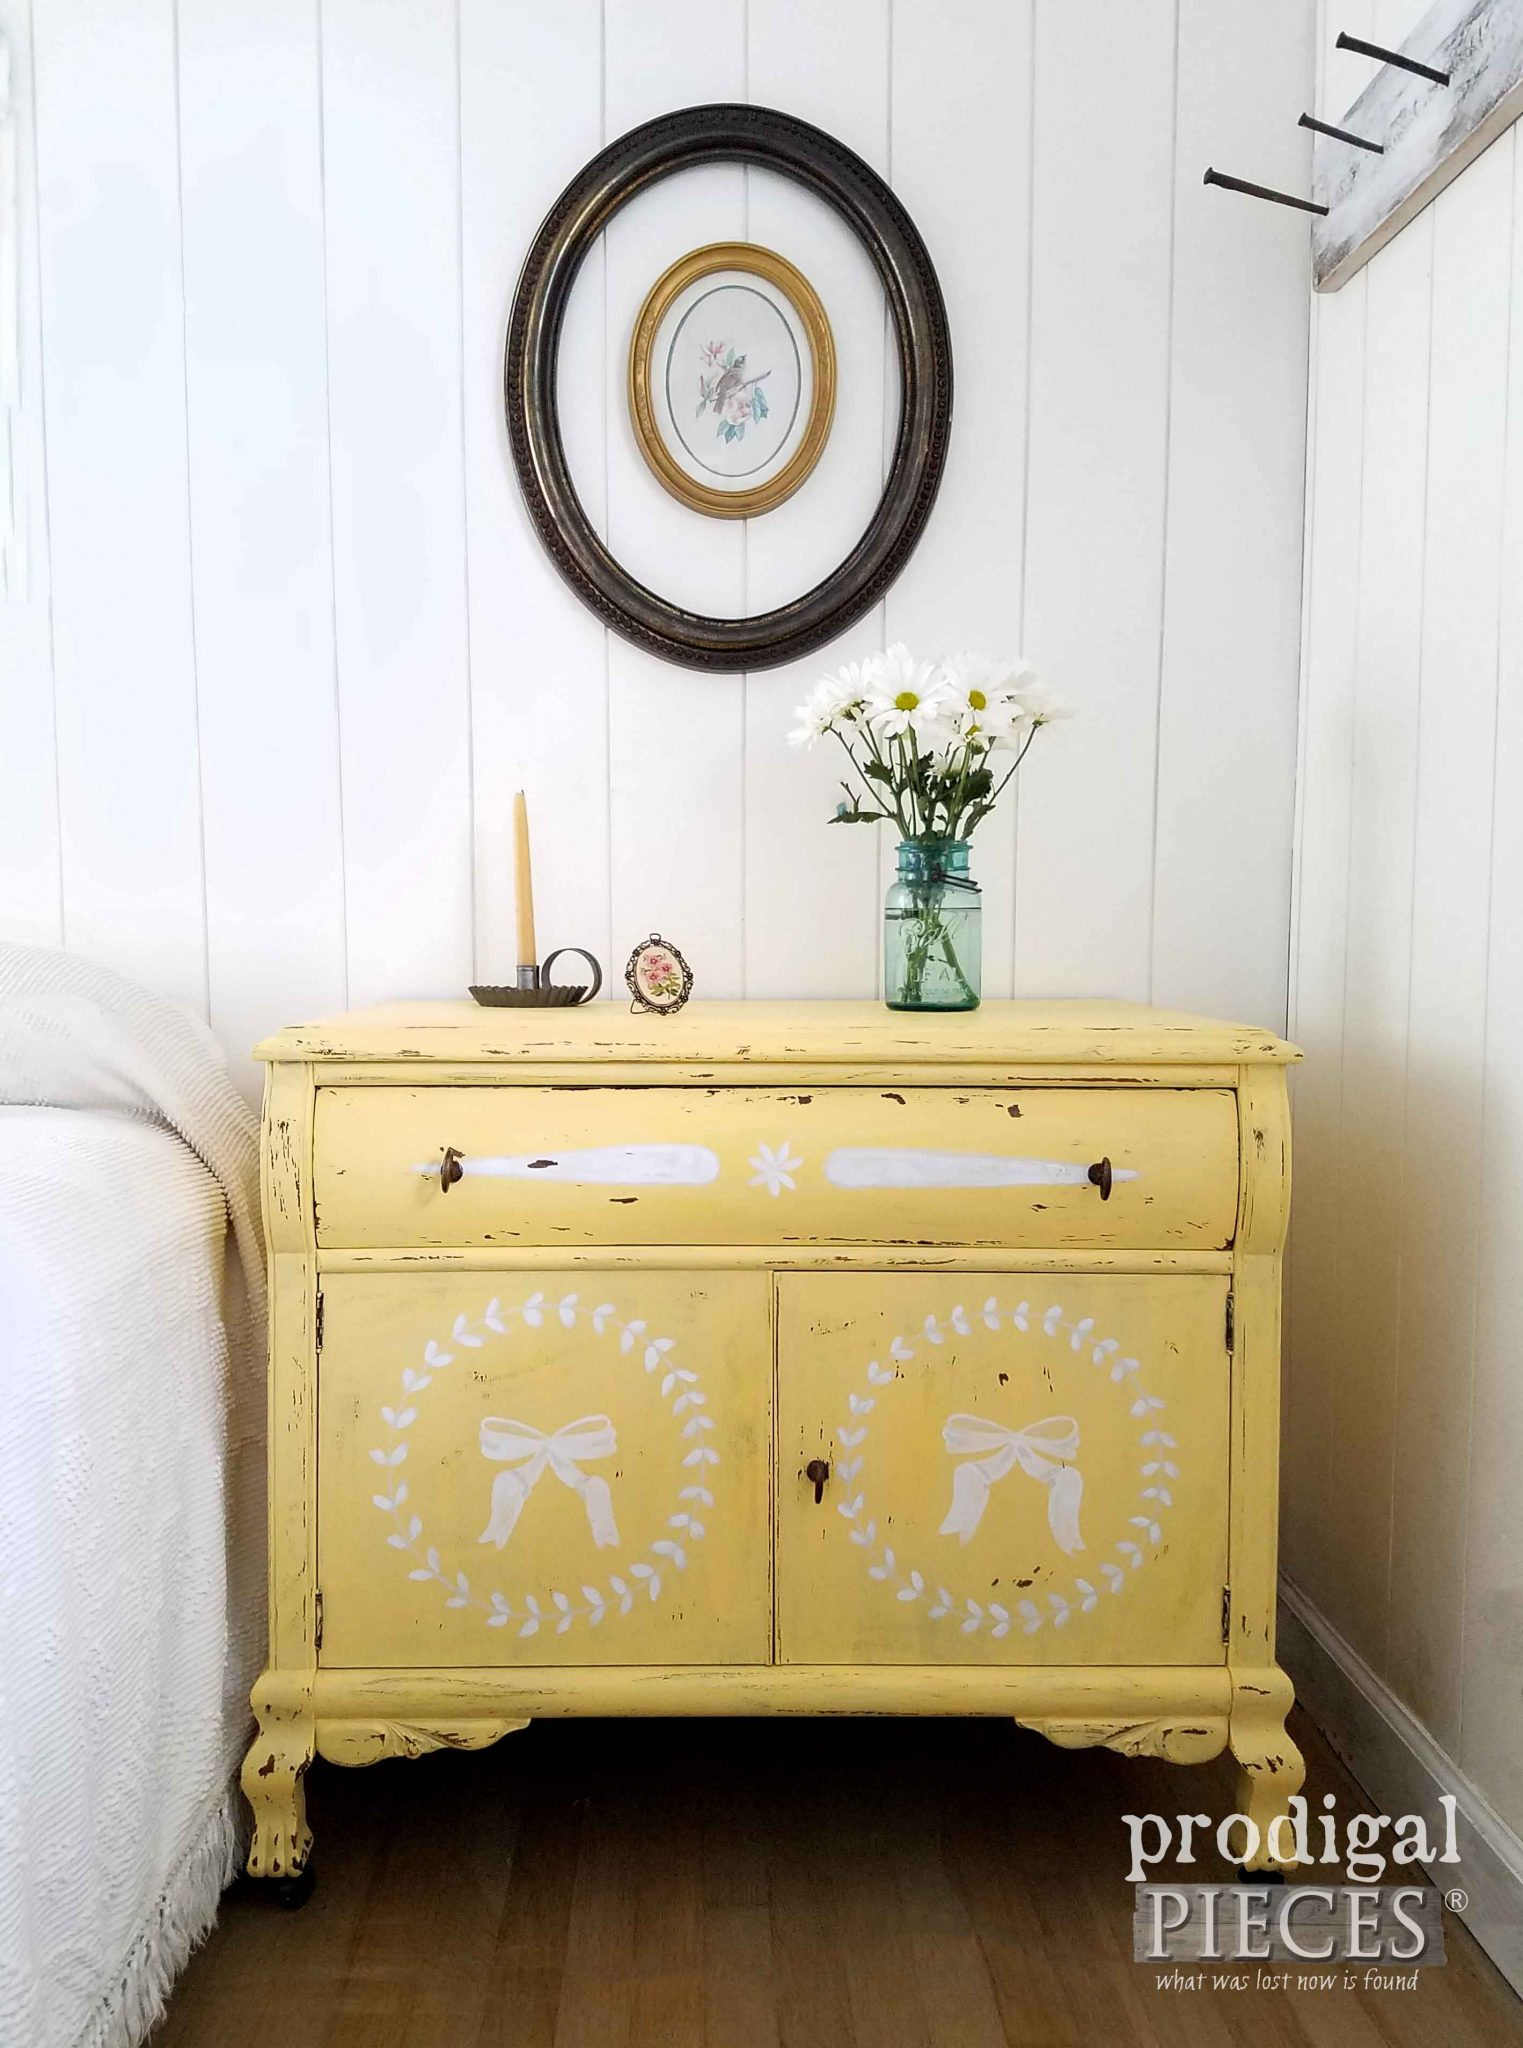 Rustic Yellow Chest with Hand-Painted Designs by Larissa of Prodigal Pieces | prodigalpieces.com